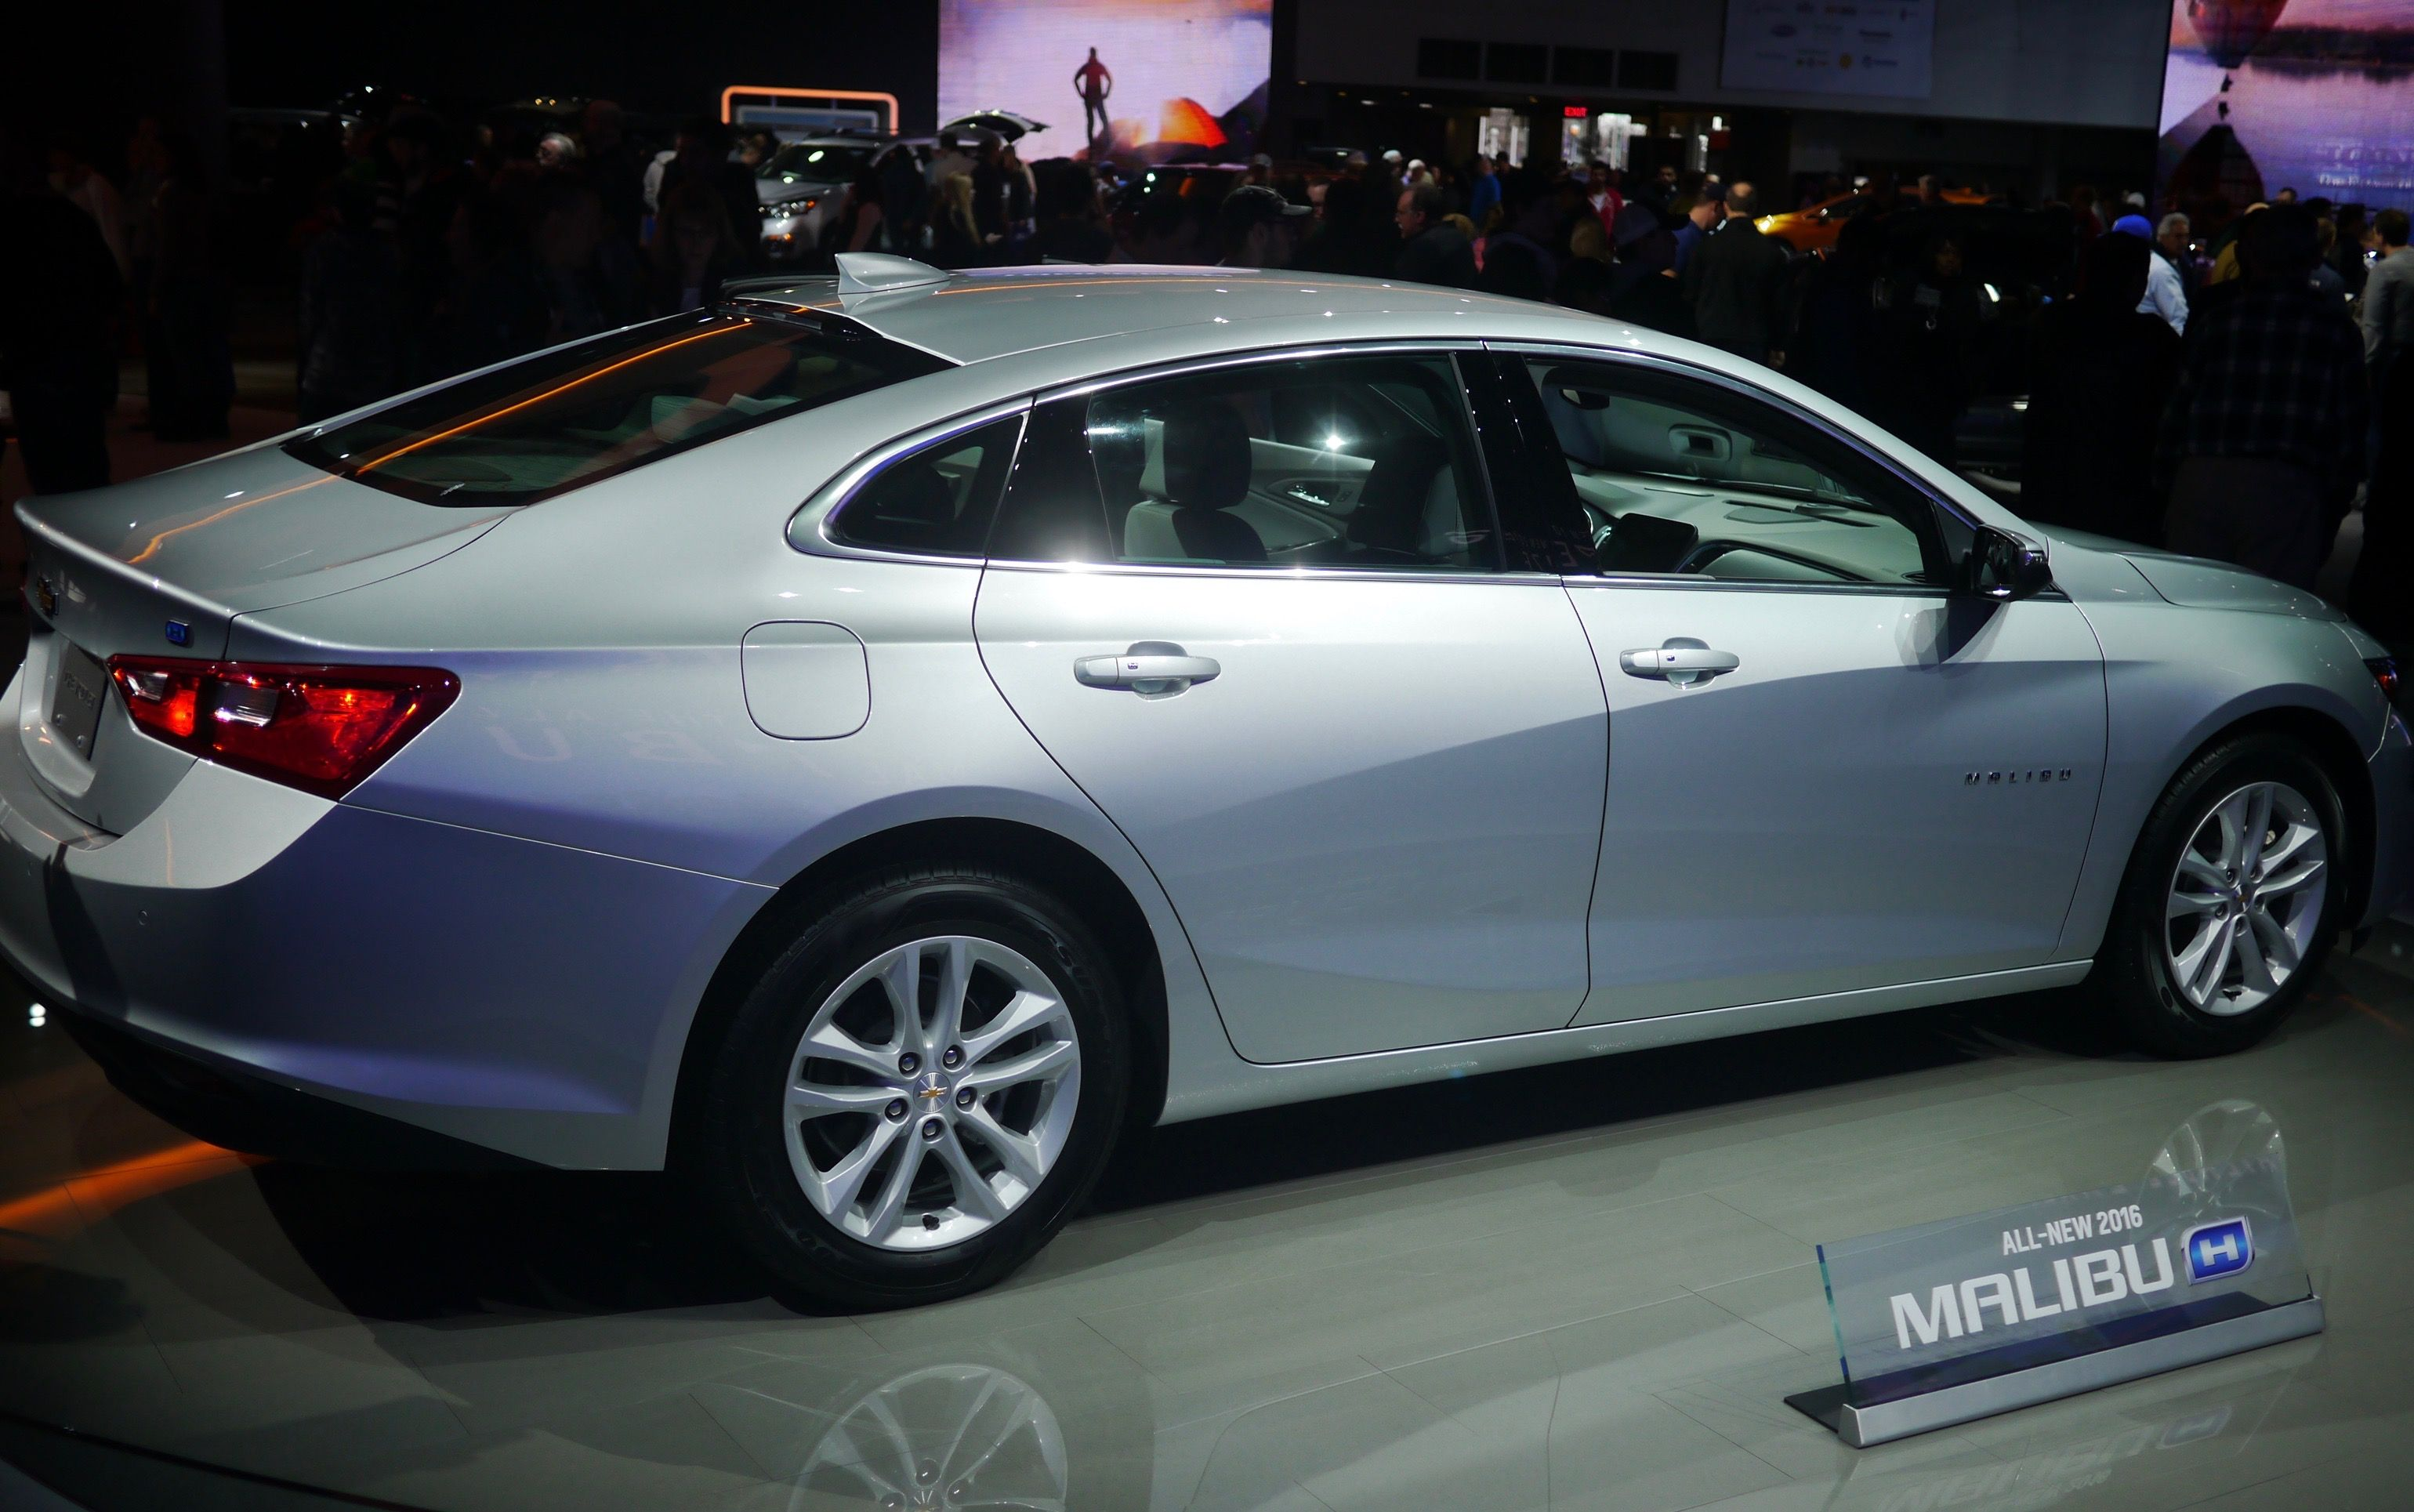 2016 Chevy Malibu at NAIAS 2016 the Detroit Auto Show